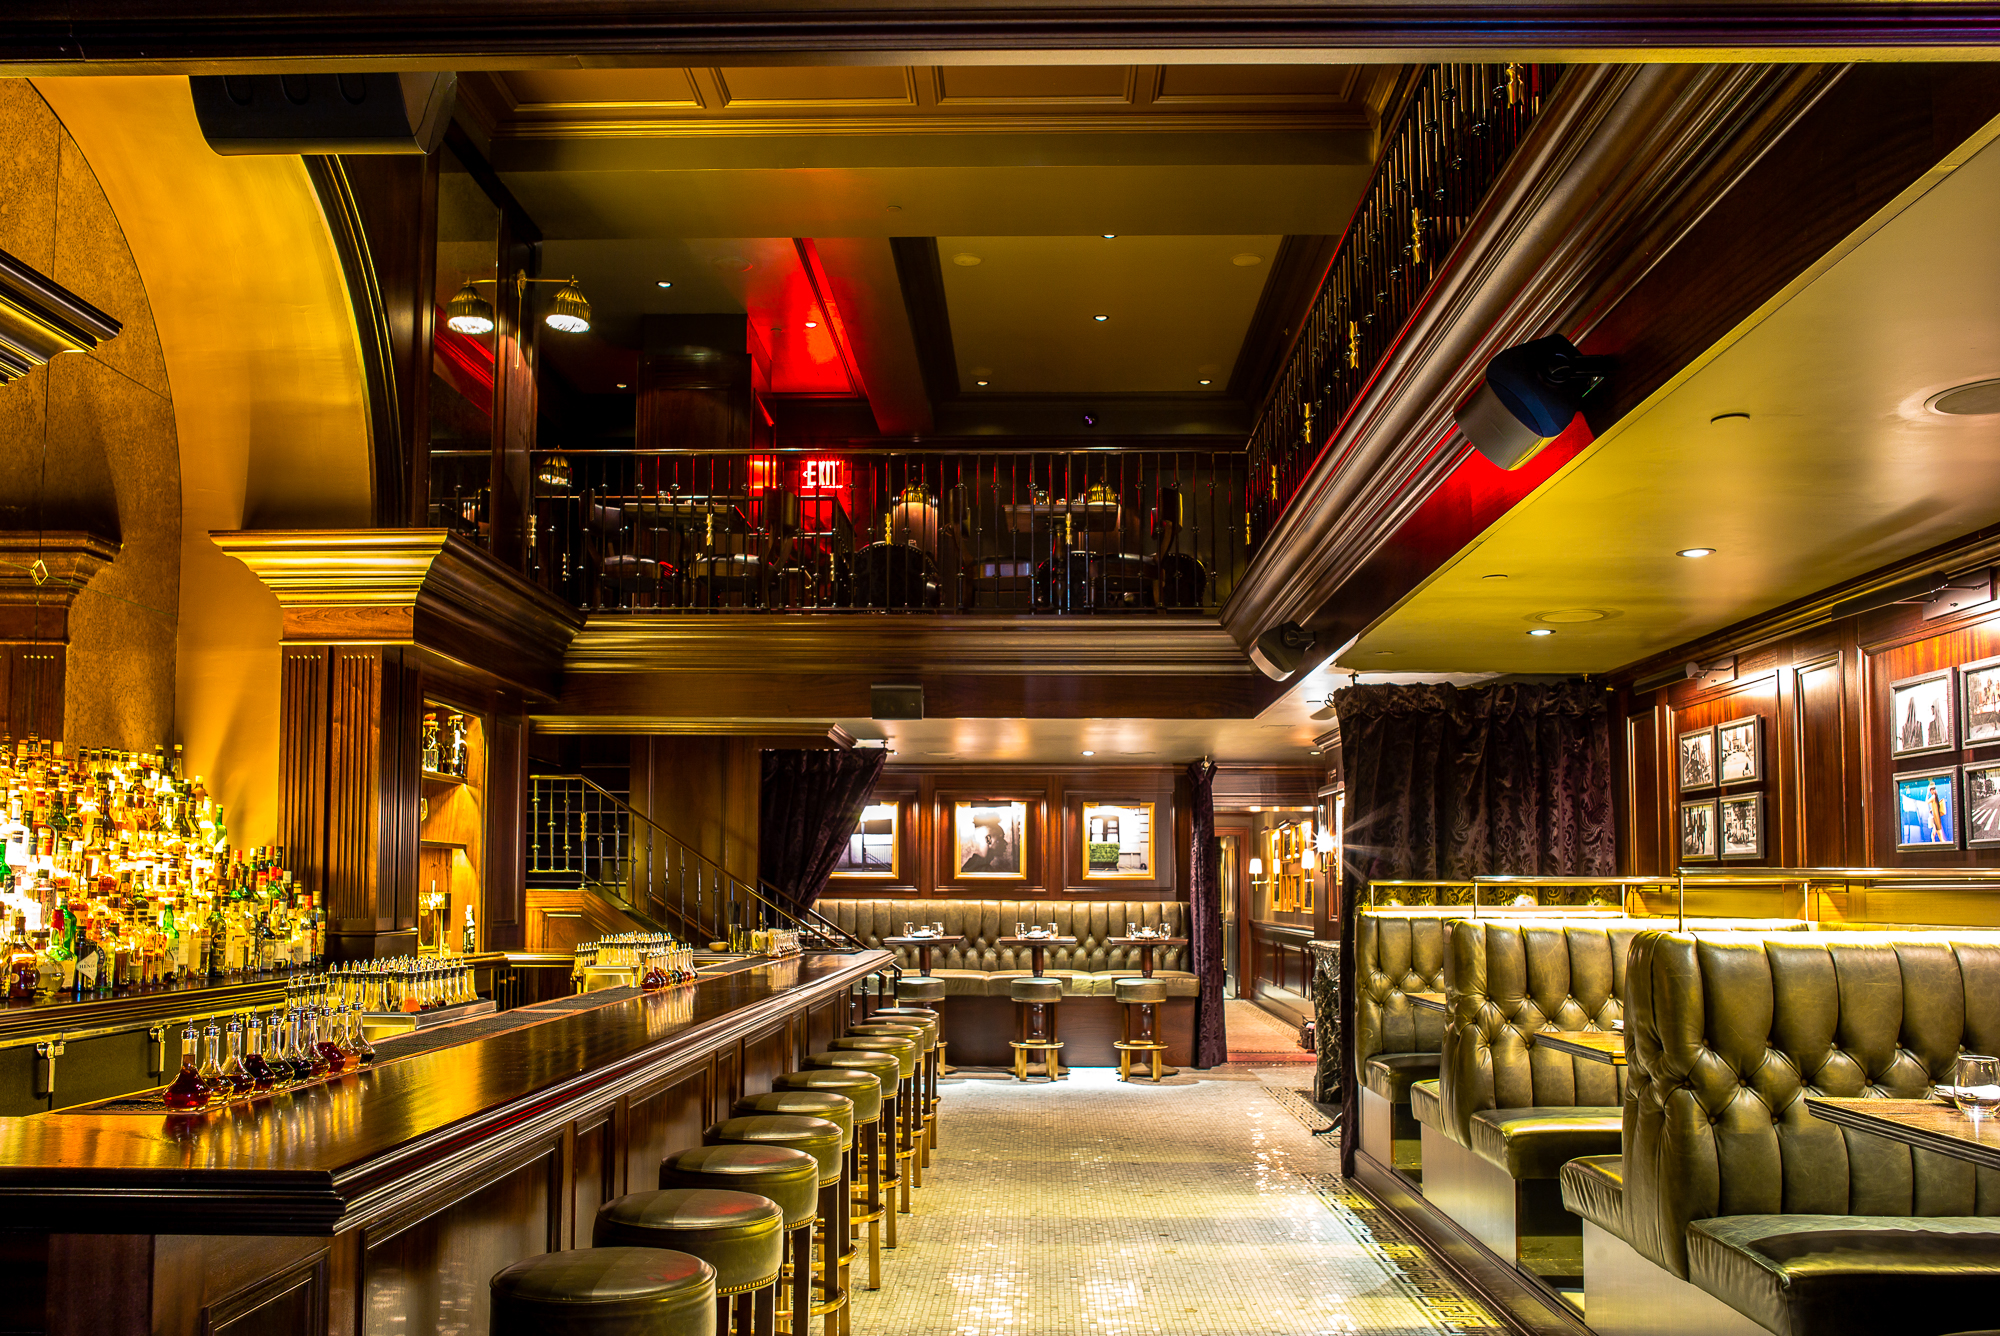 Nomad Bar, with a big bar to the left and booth seating to the right